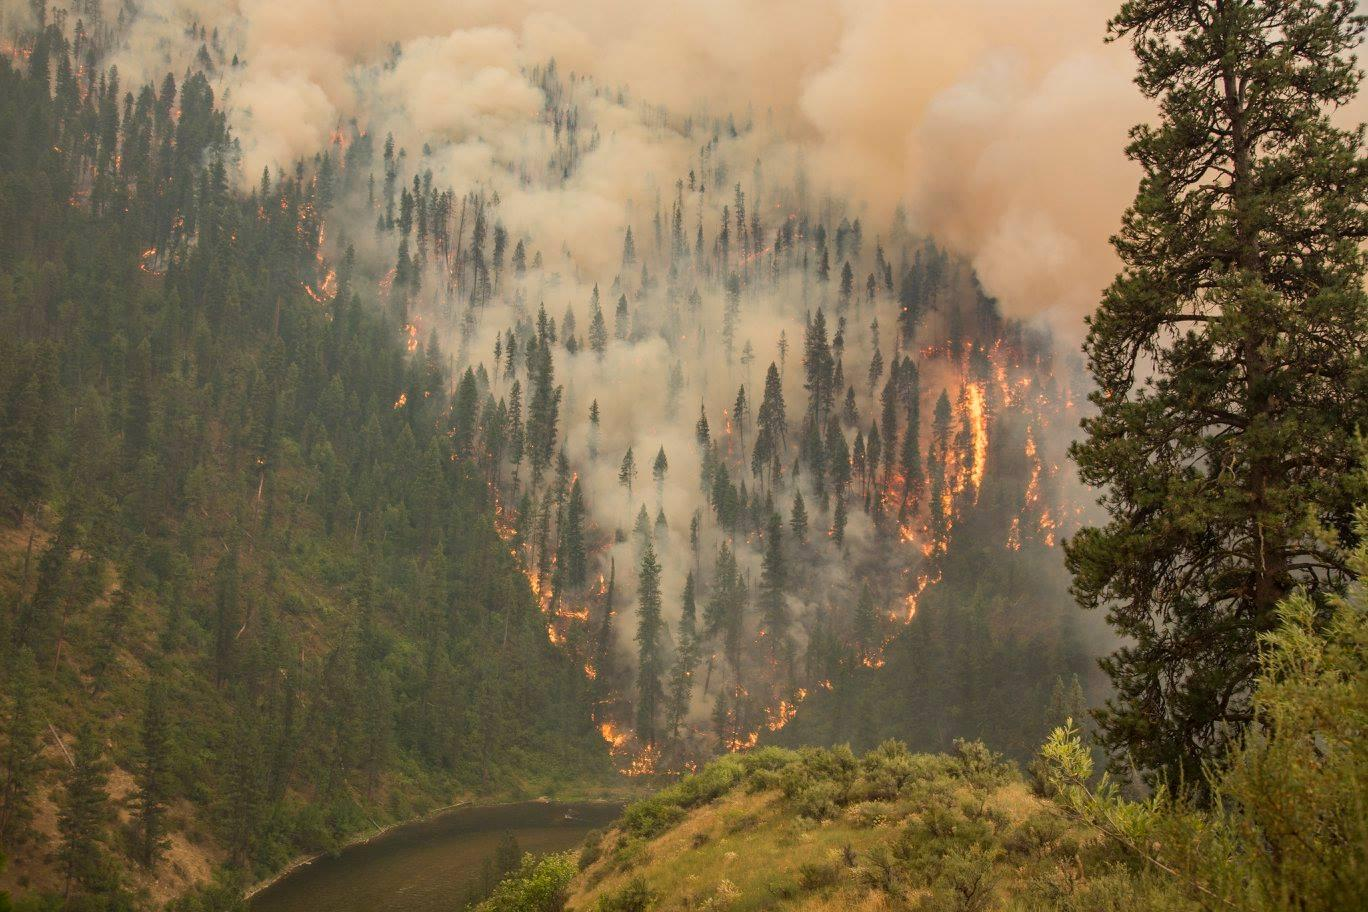 Photo Courtesy of http://boisestatepublicradio.org/post/idaho-congressman-reintroduces-bill-end-forest-service-policy-fire-borrowing